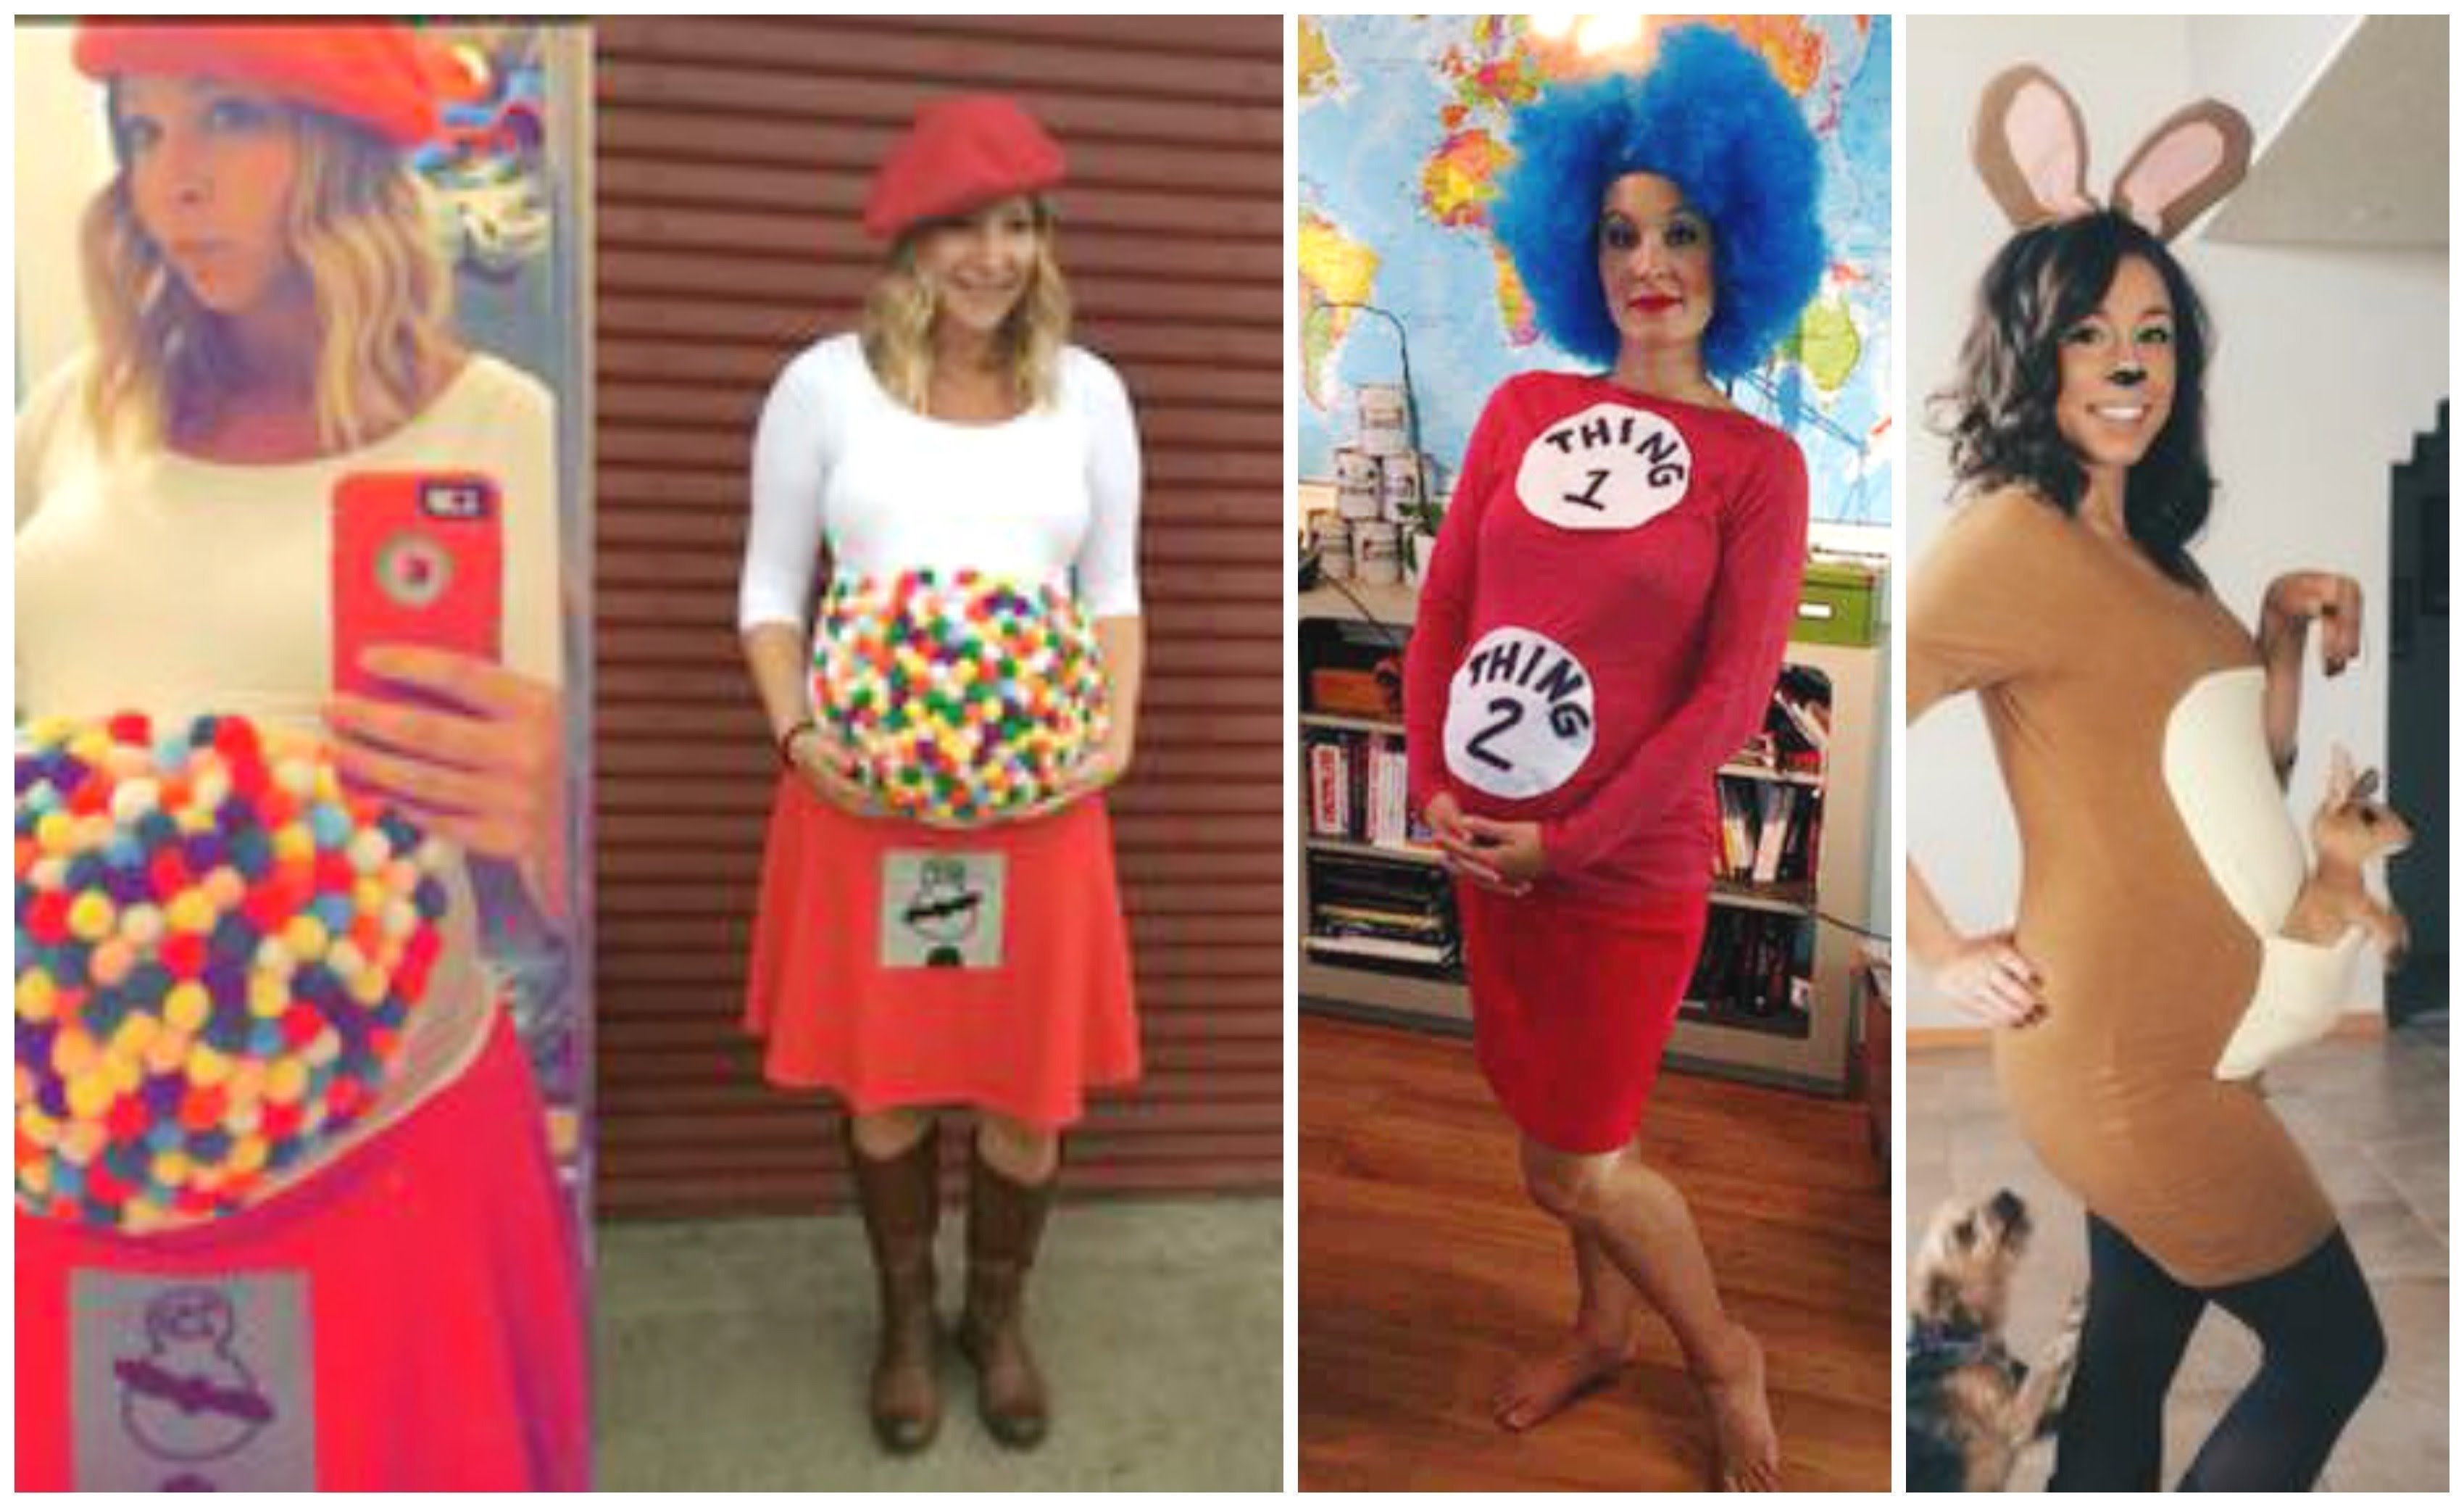 10 Attractive Creative Halloween Costume Ideas For Women creative maternity halloween costume ideas costume ideas for 3